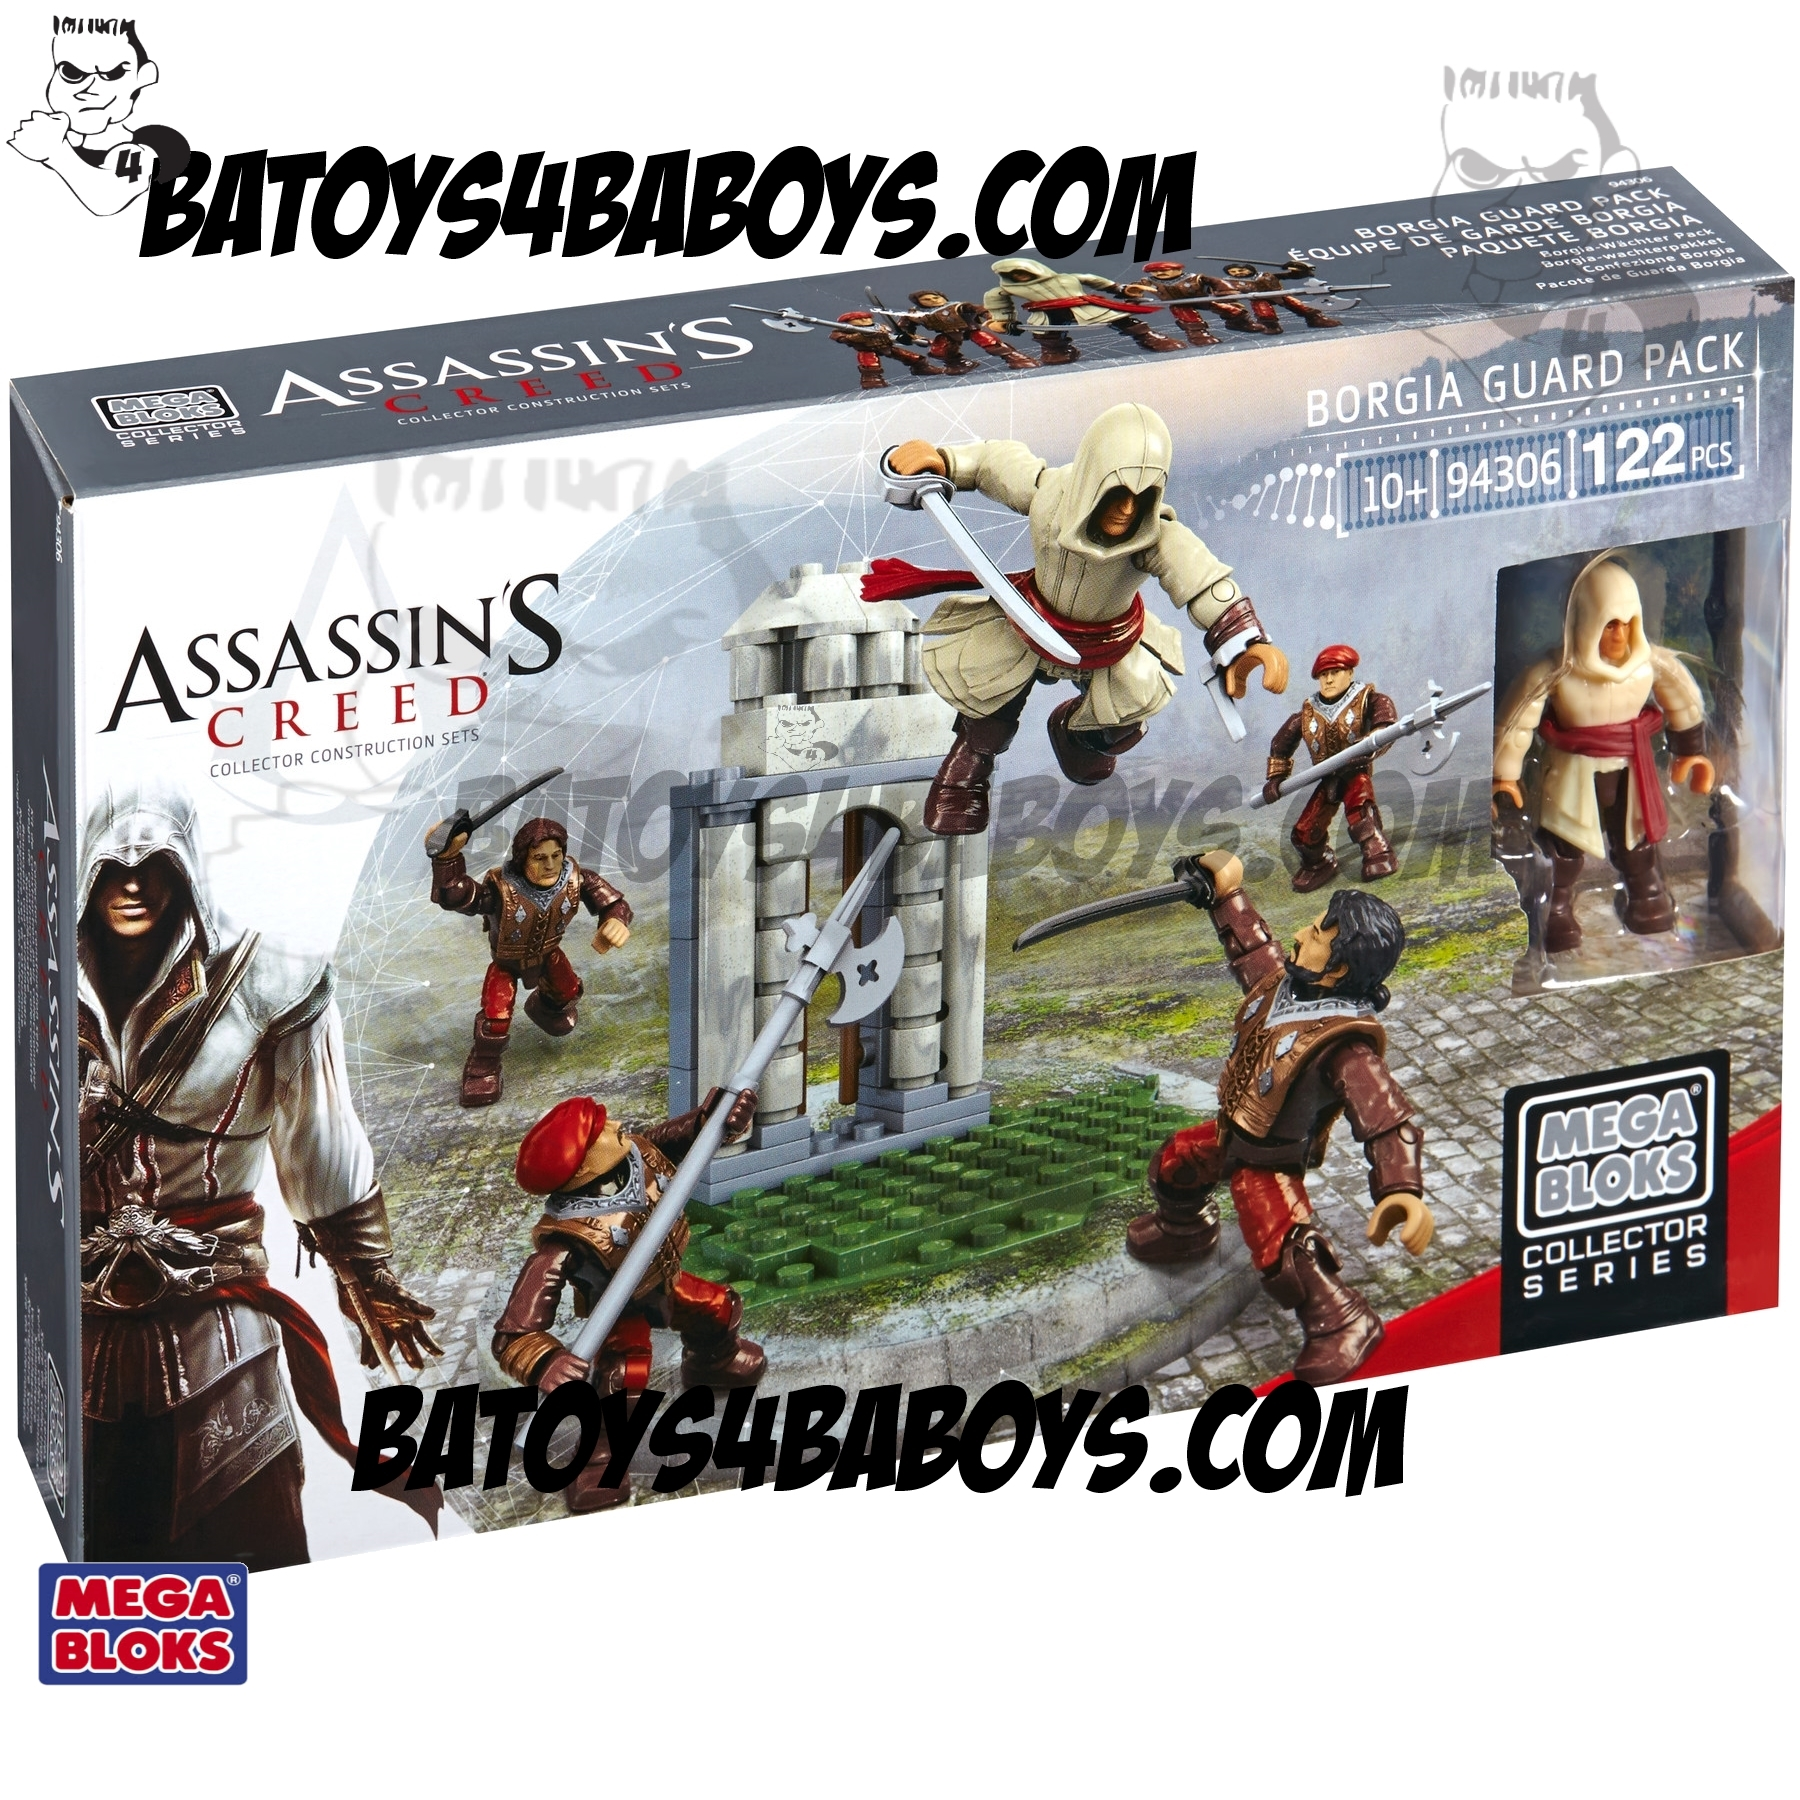 2014 Mega Bloks Assassin's Creed Borgia Guard [Faction Battlion Crew] Pack